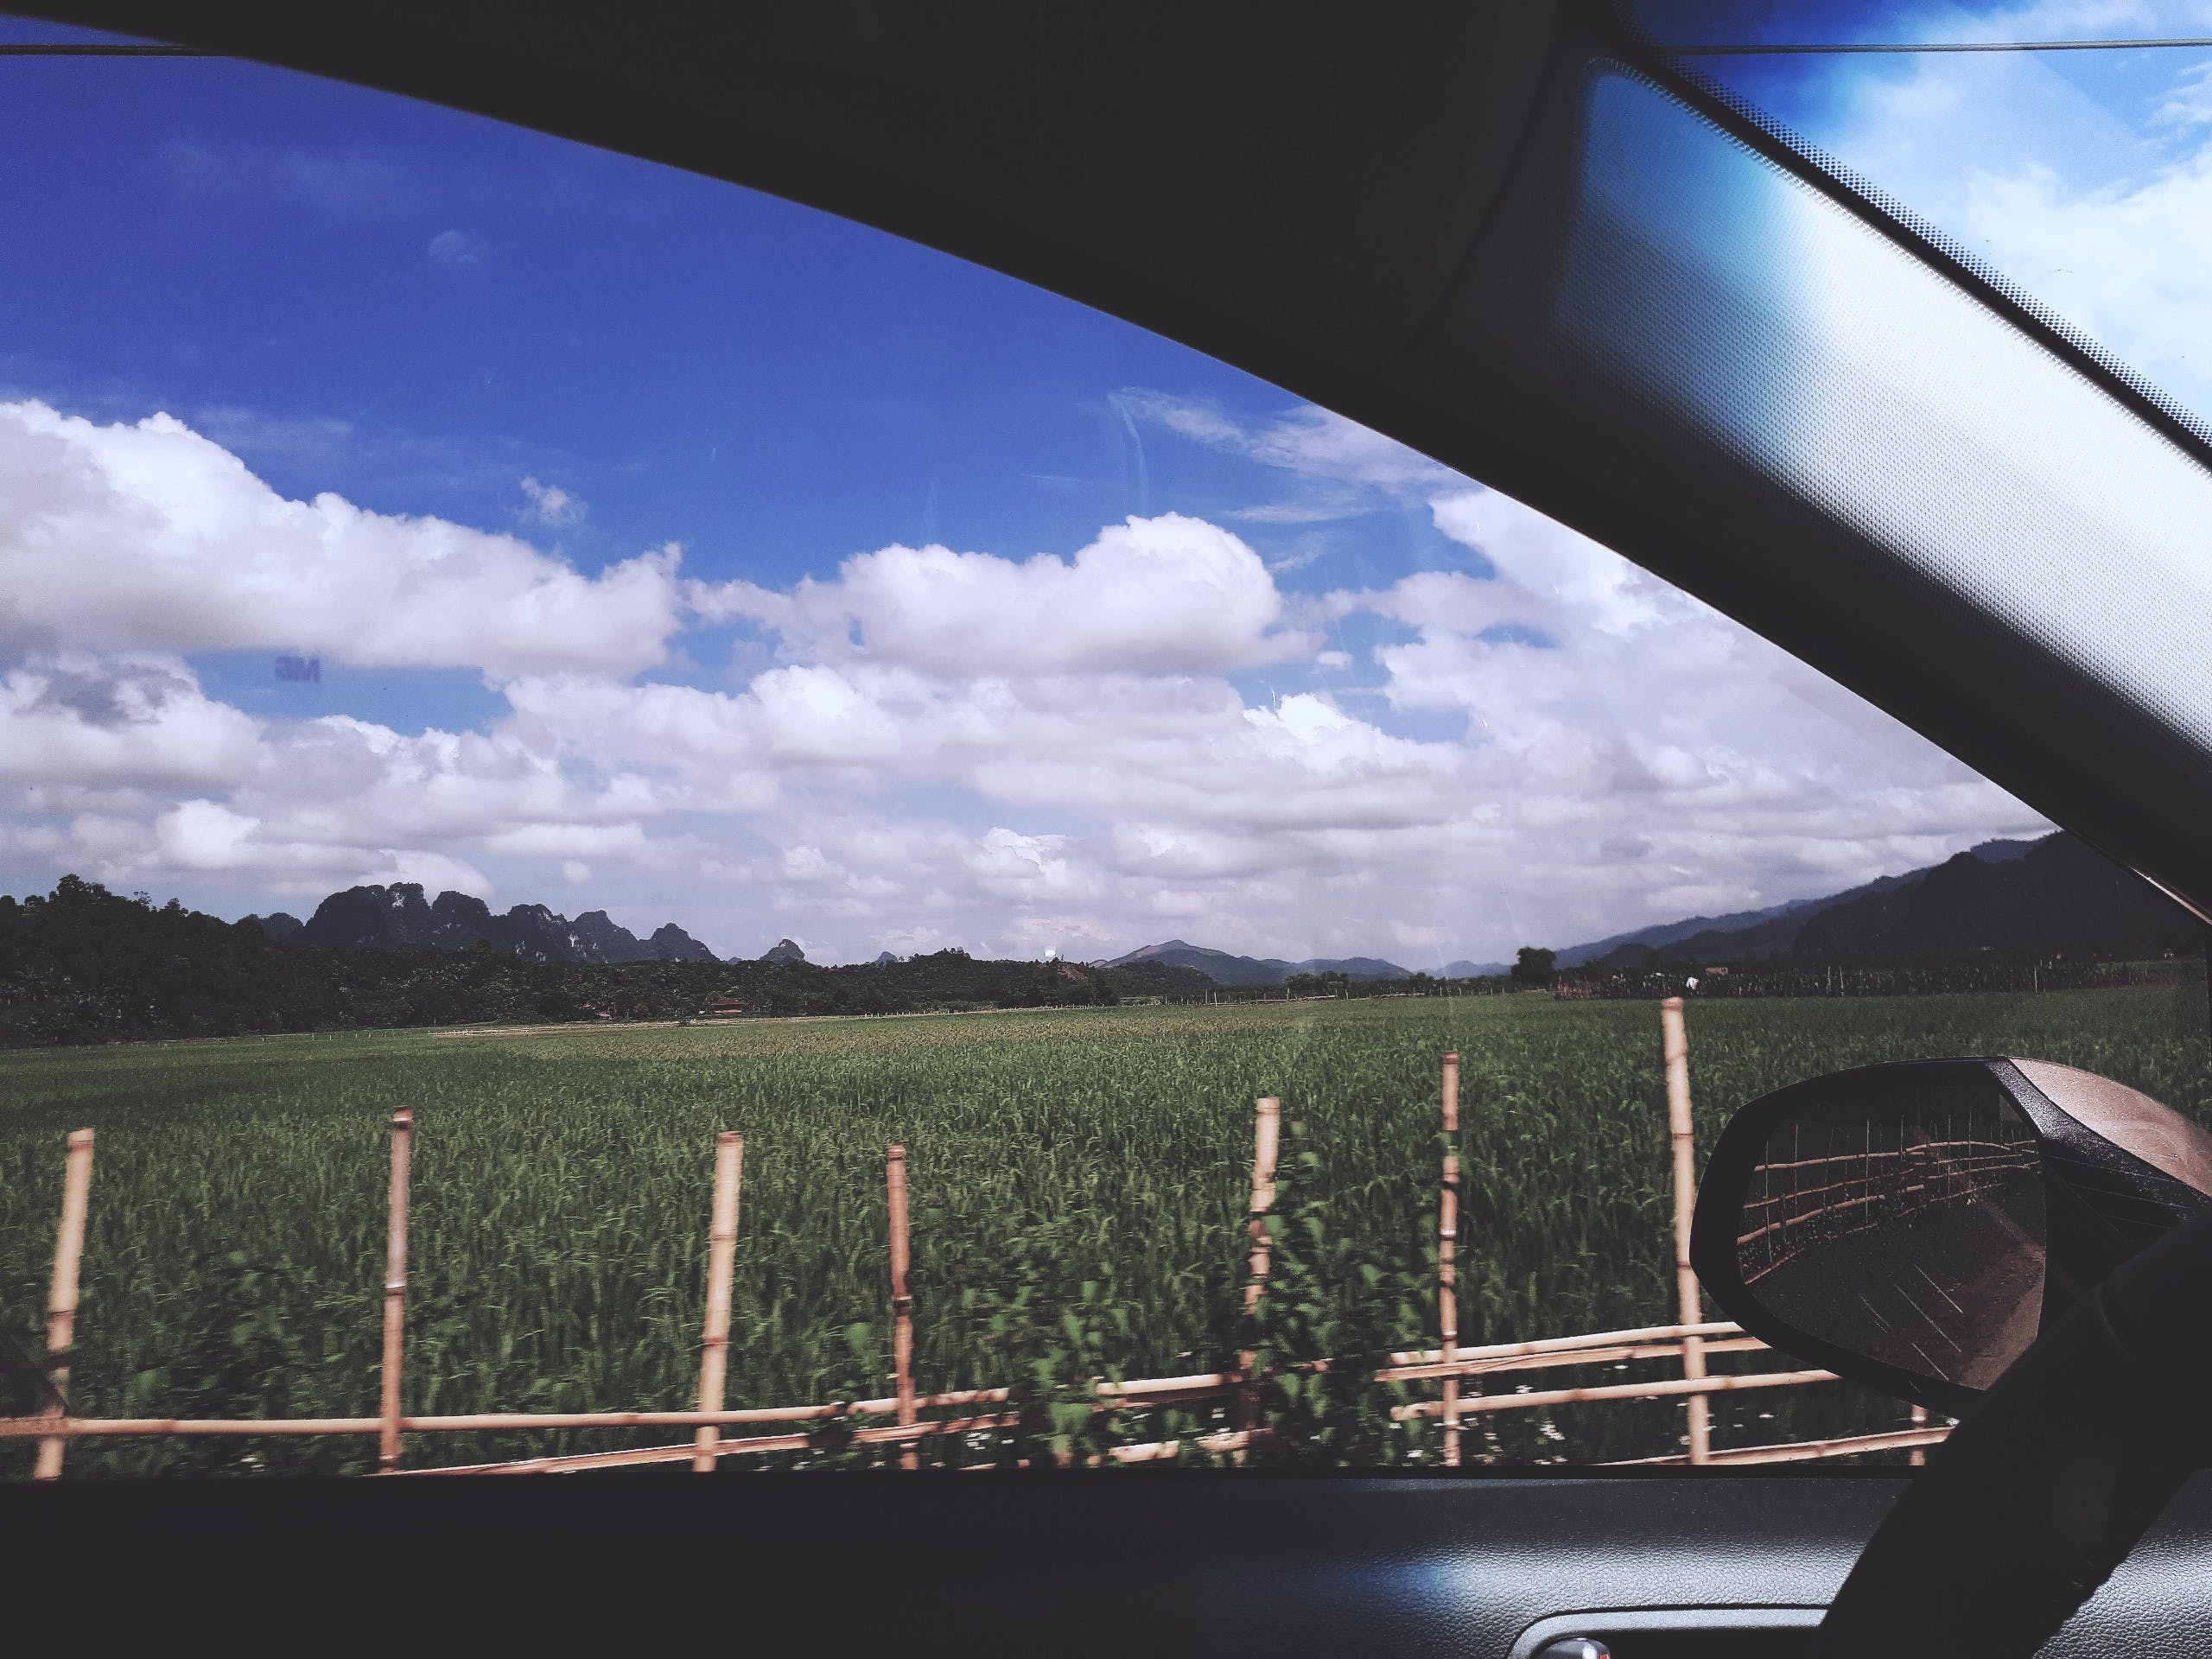 Free stock photo of blue sky, car, cloud, corn field